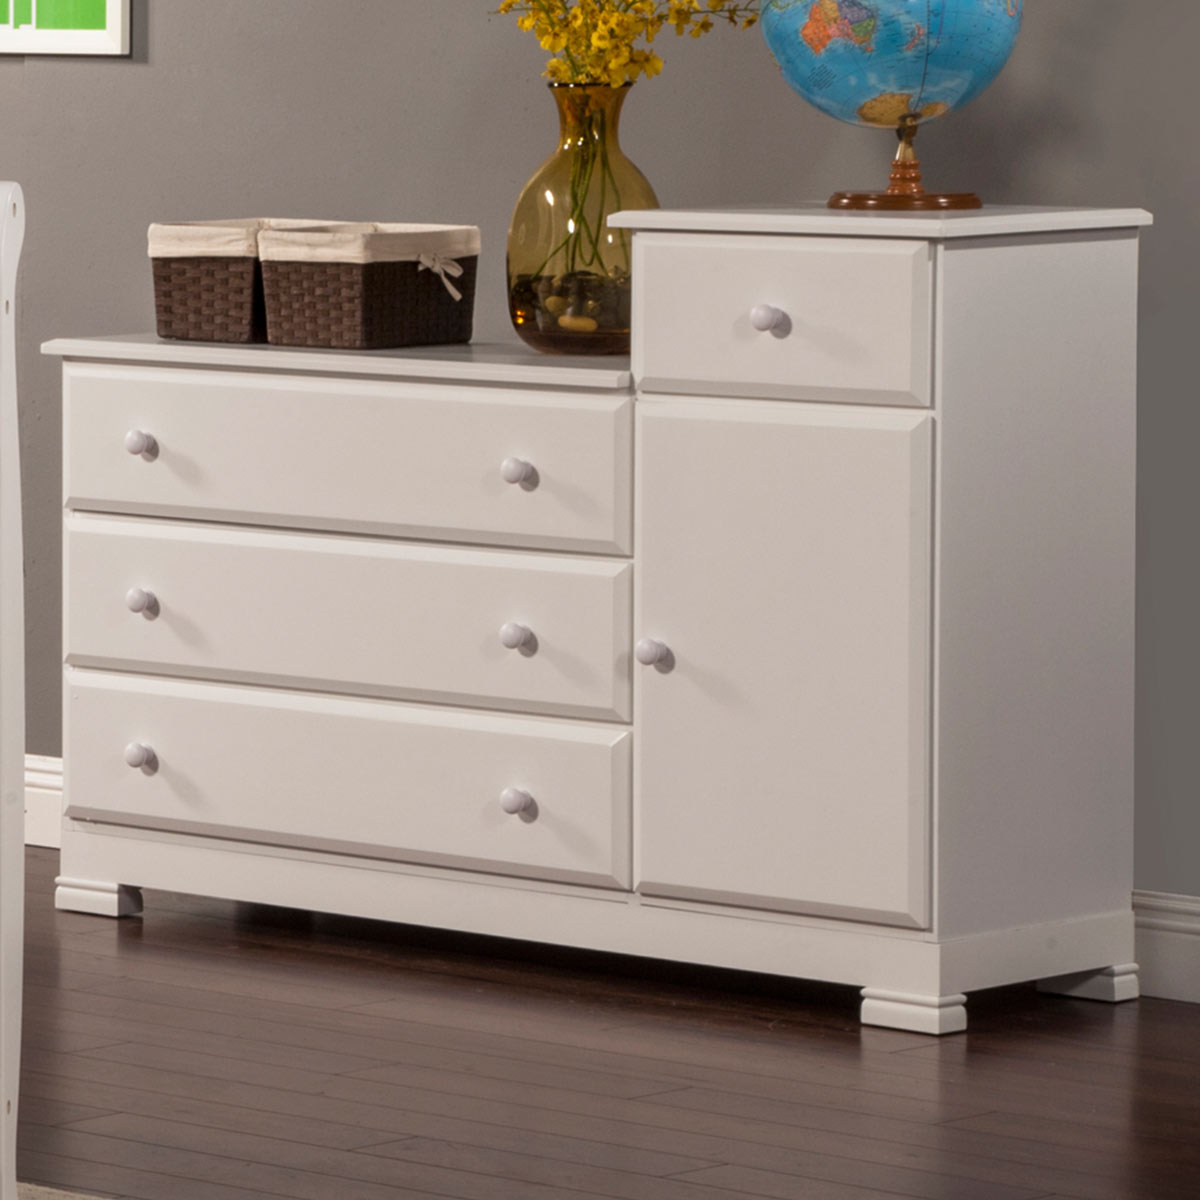 group for davinci wallpapers exciting nursery cheap hd your drawer kalani bedroom dresser